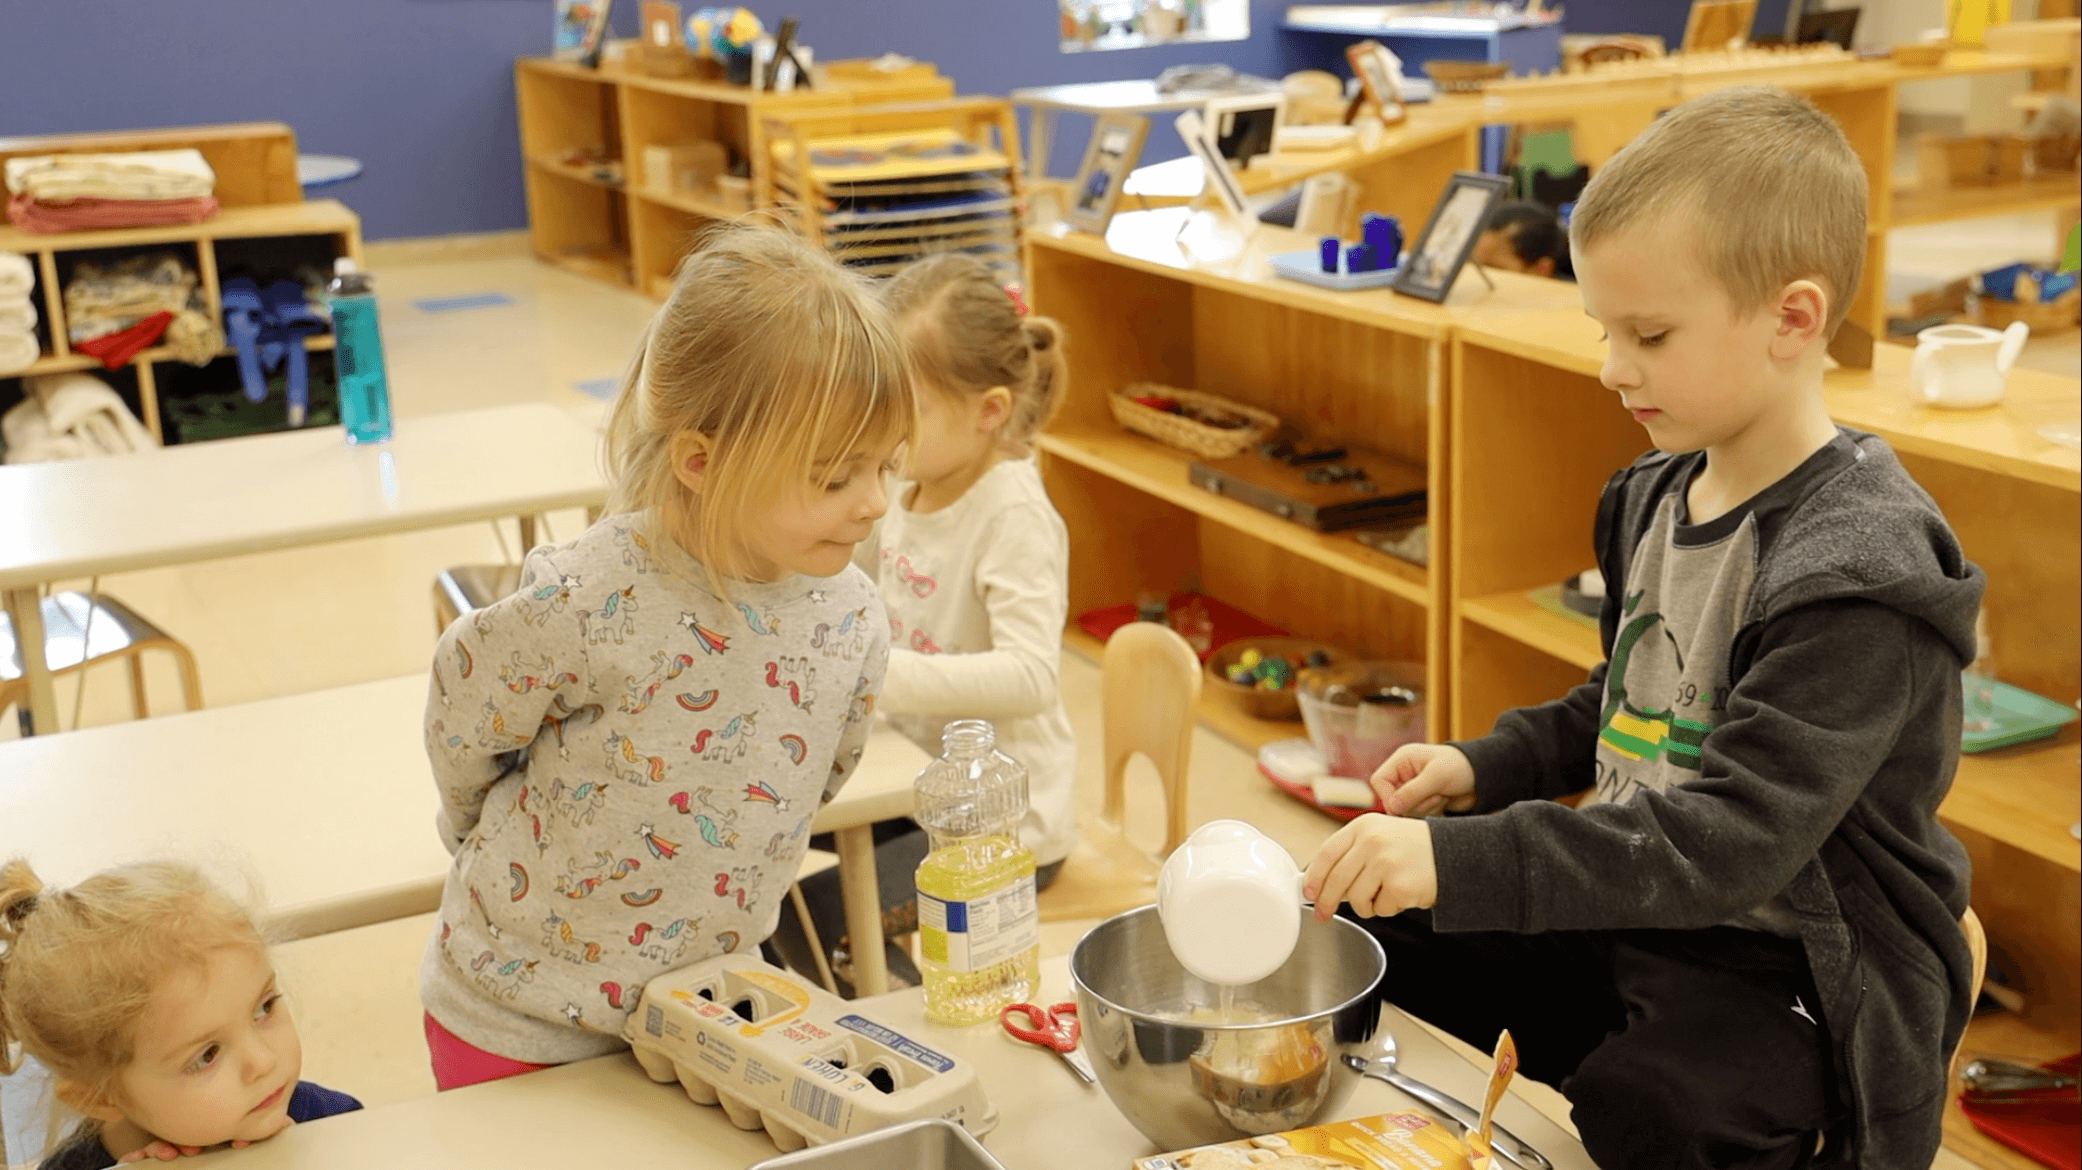 Kids playing with cooking materials